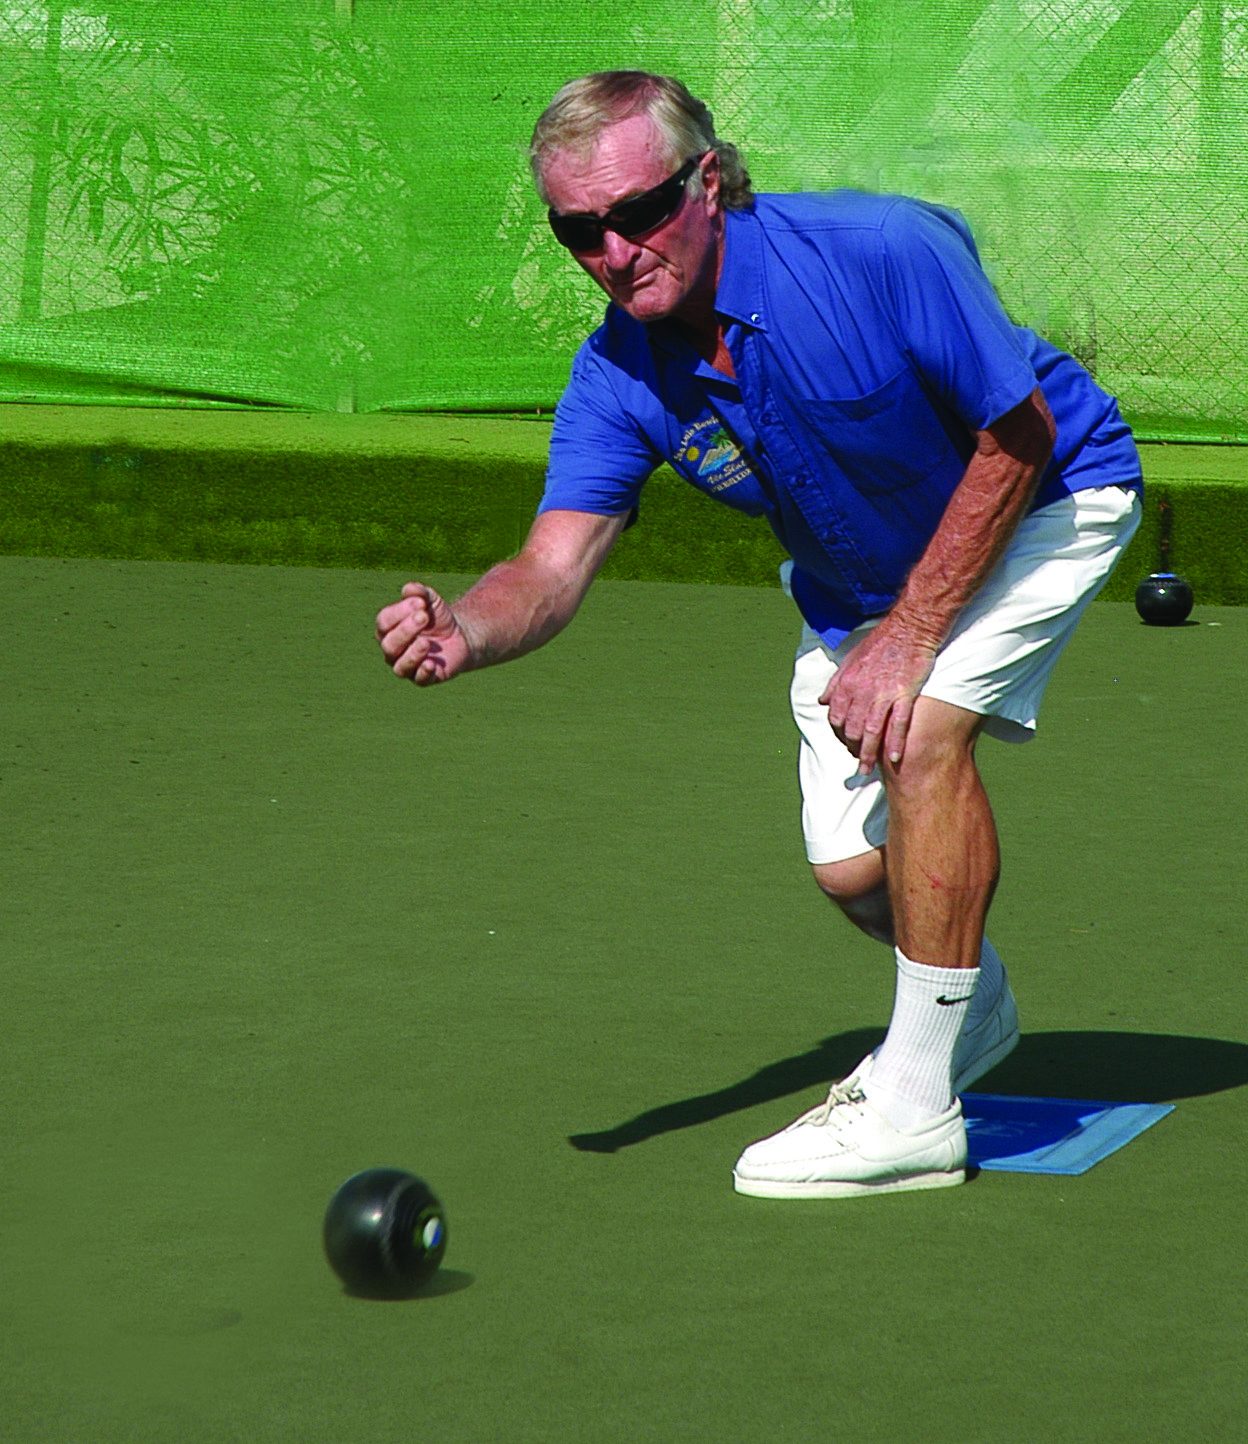 Vic Slater the propetor of San Luis Bowls Club